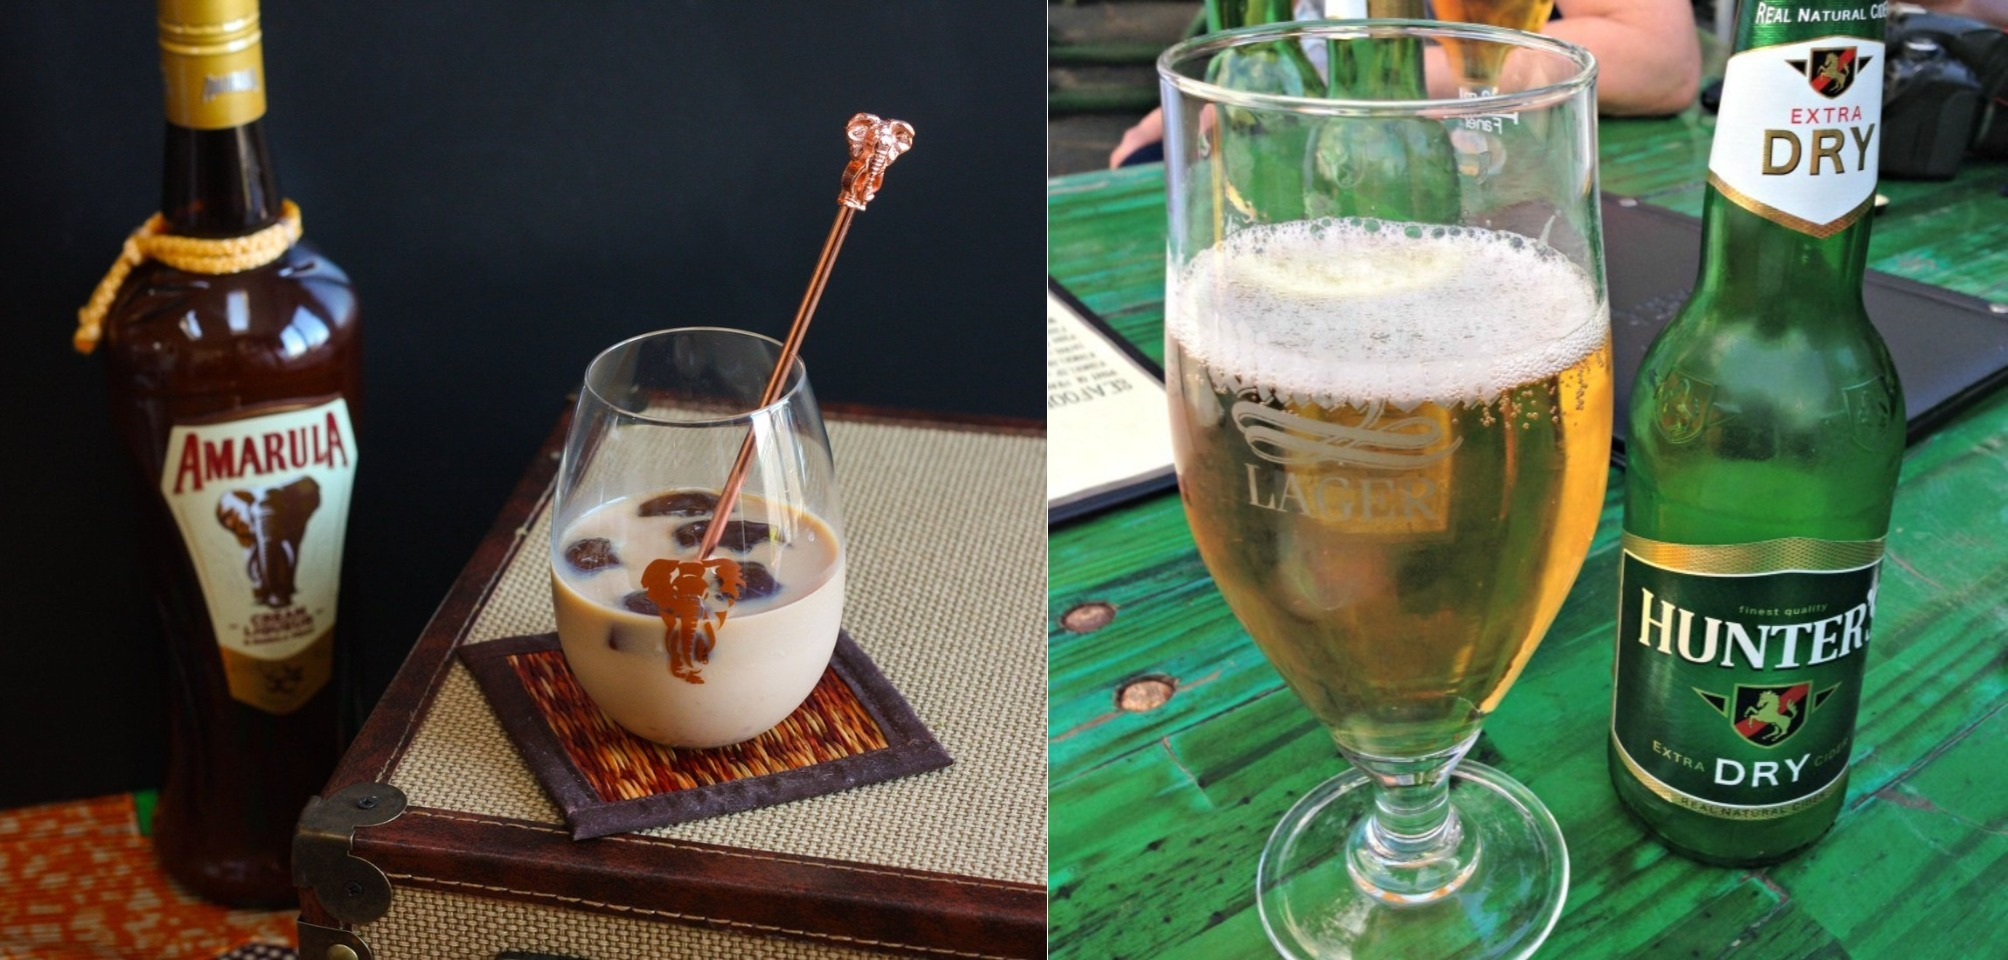 Are You Brave Enough For Home-made Amarula Or Hunter's Dry? photo